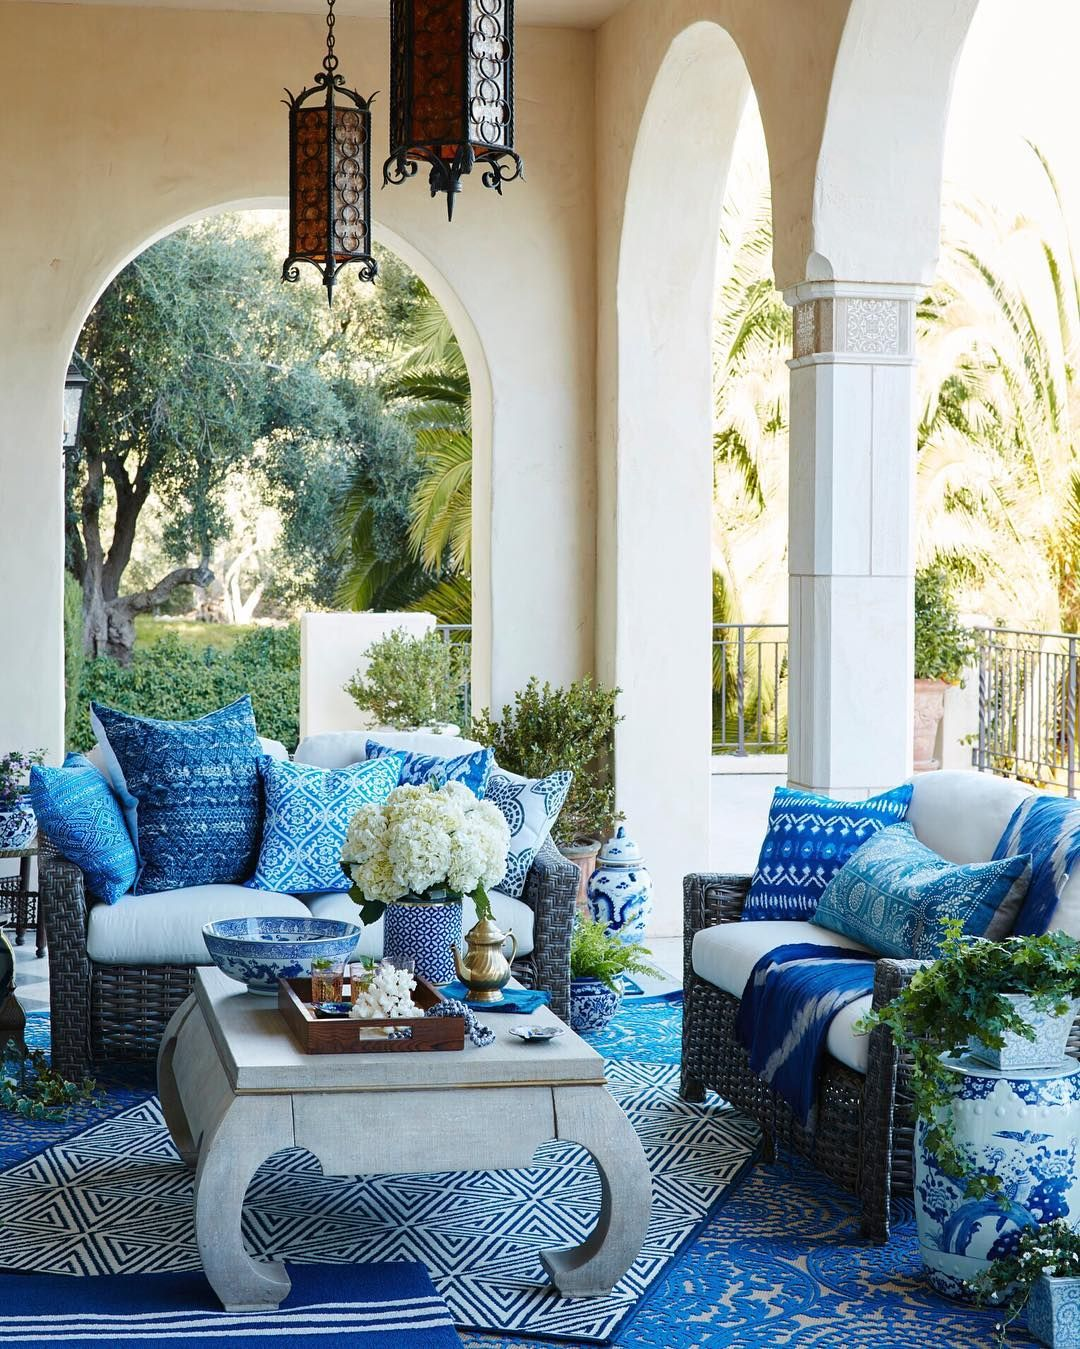 Bungalow the kitchen outdoor living space stone textile at home - Beautifully Bohemian Outdoor Patio Decked Out With Patterned Blue And White Textiles